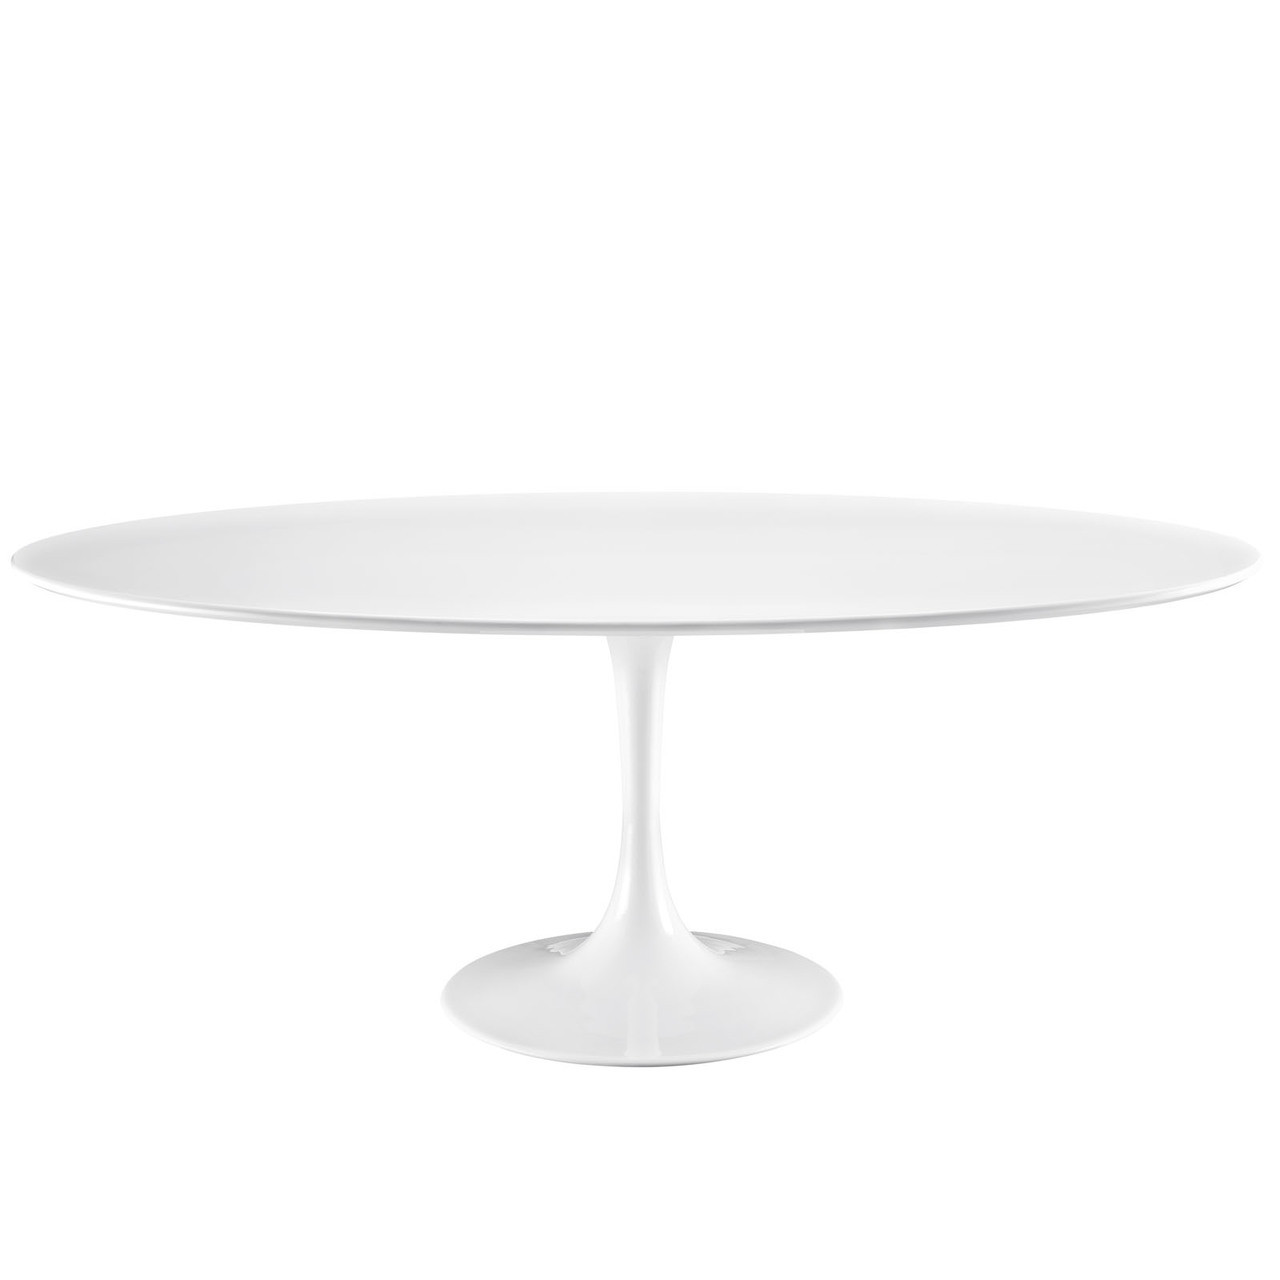 "Lippa 78"" Oval Wood Top Dining Table"